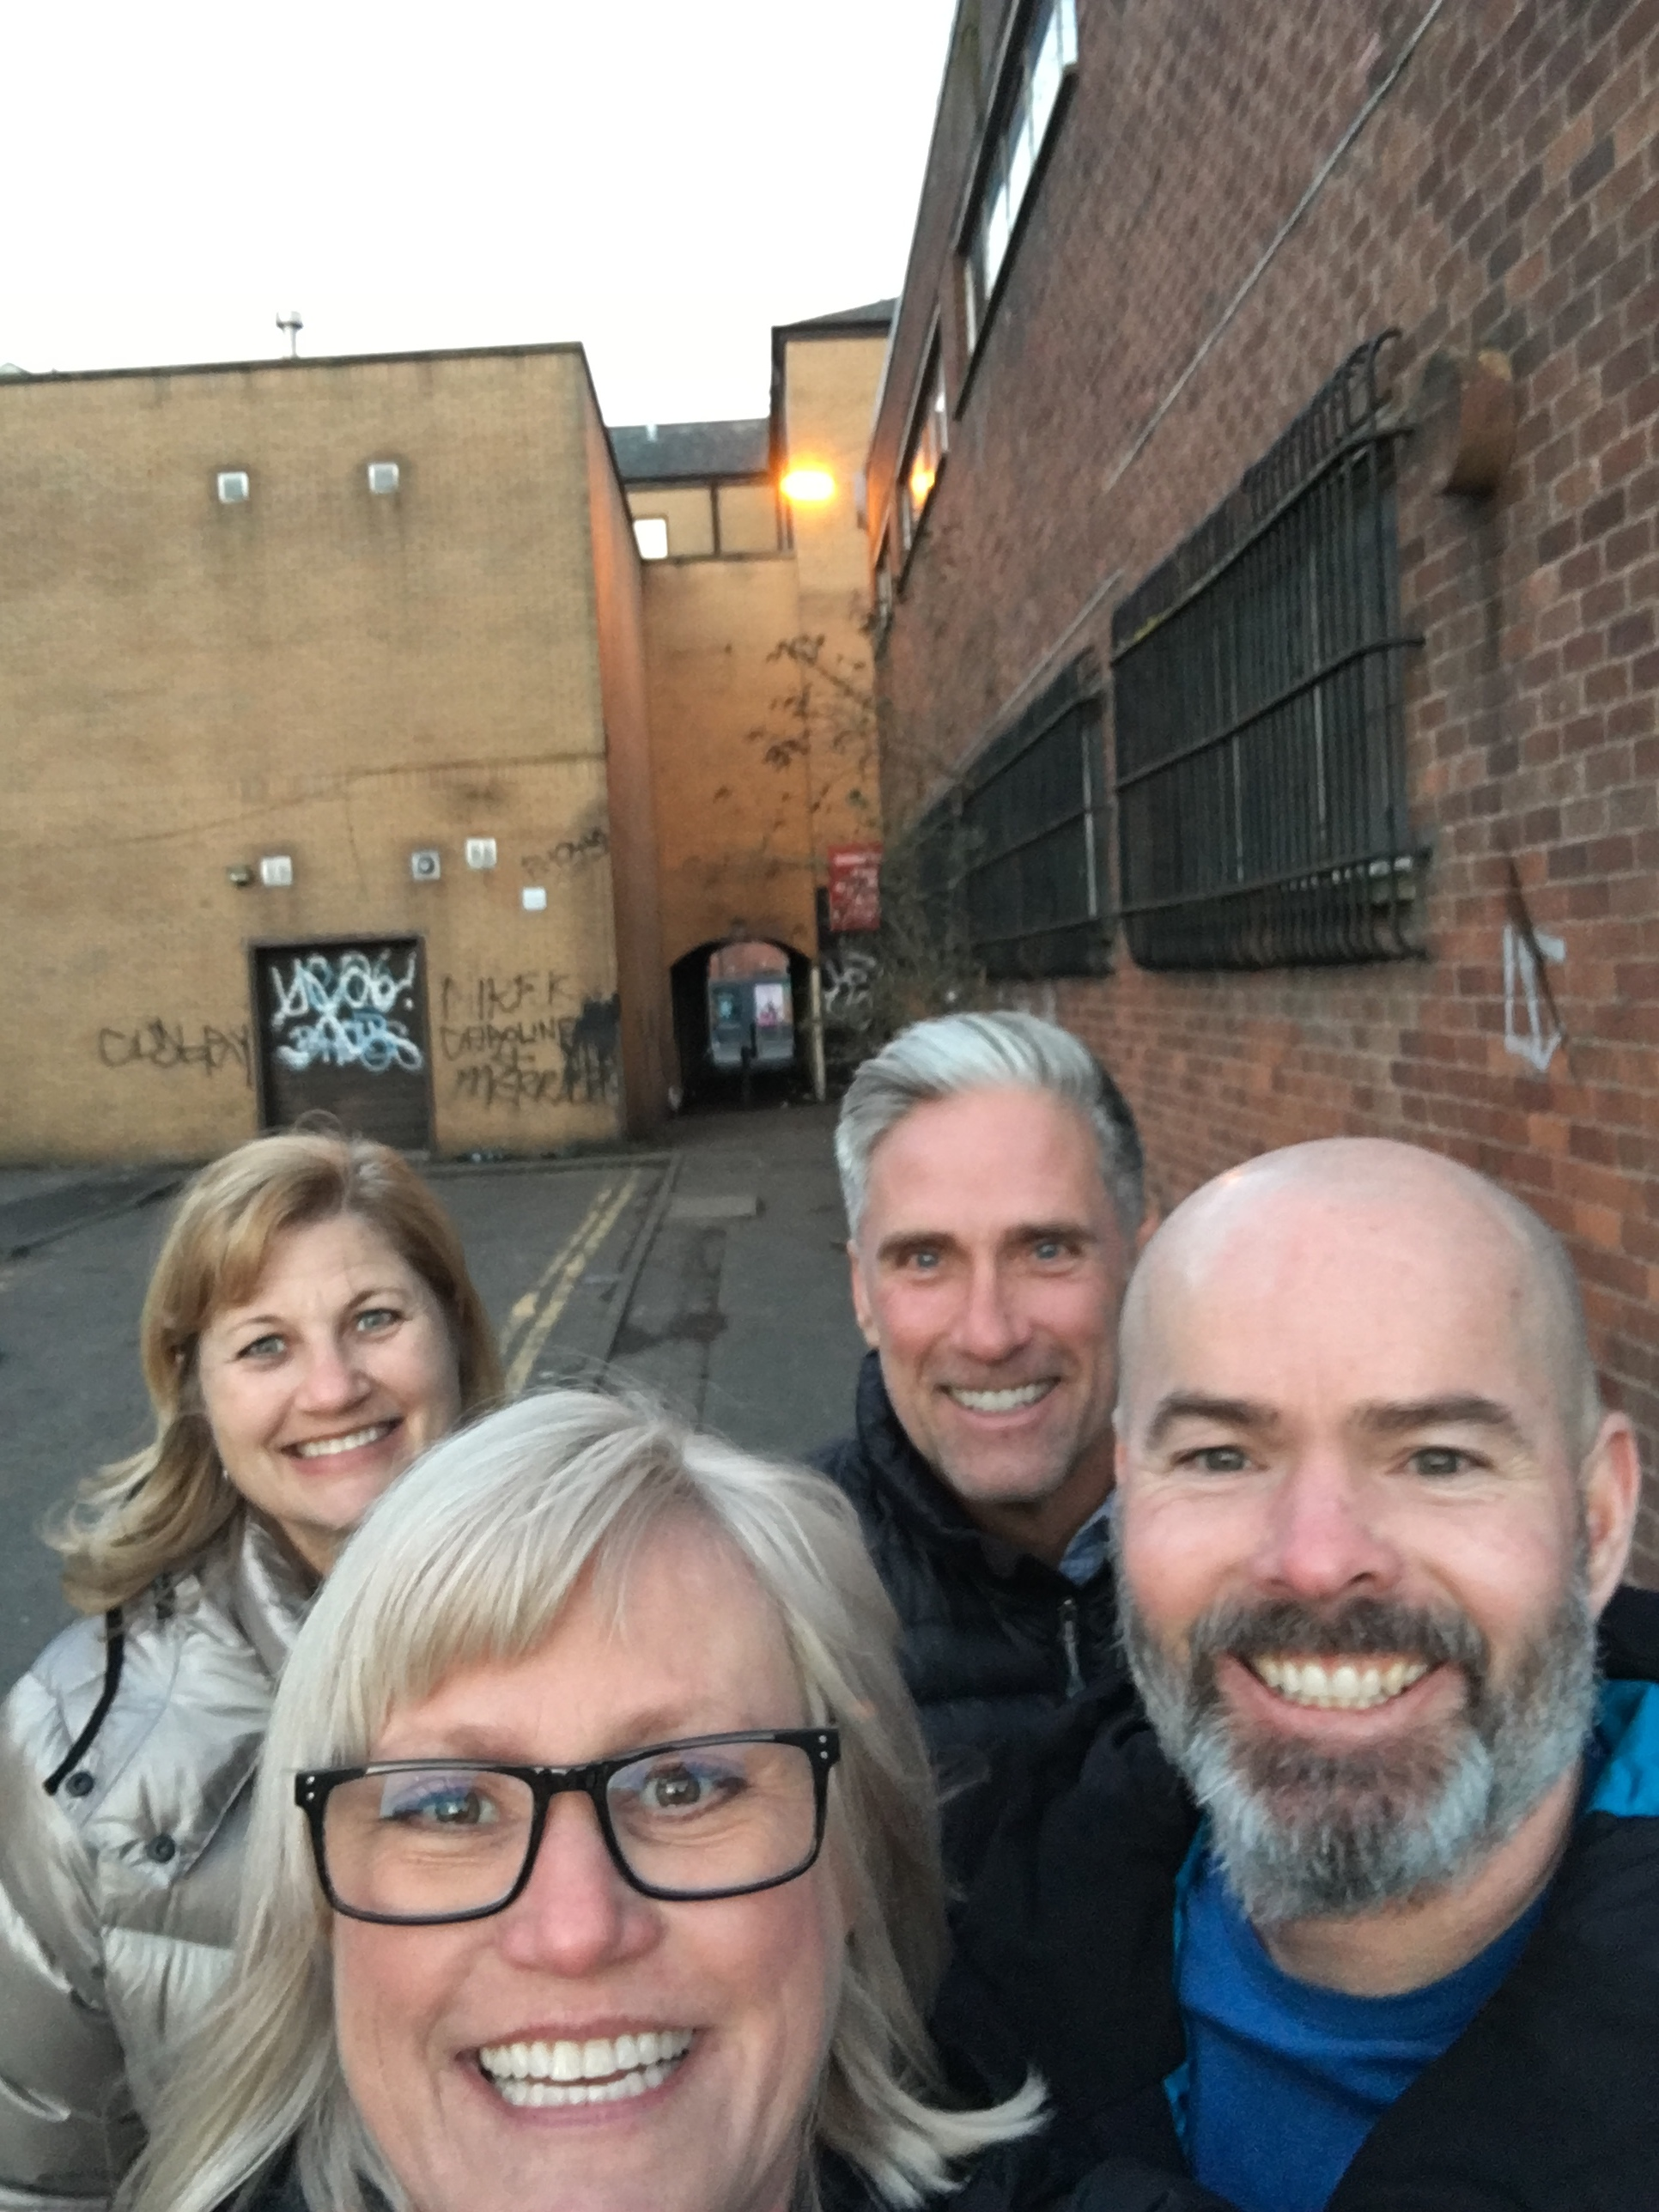 Taking a shortcut through what we called the alley of death in Glasgow. We lived to tell the tale!